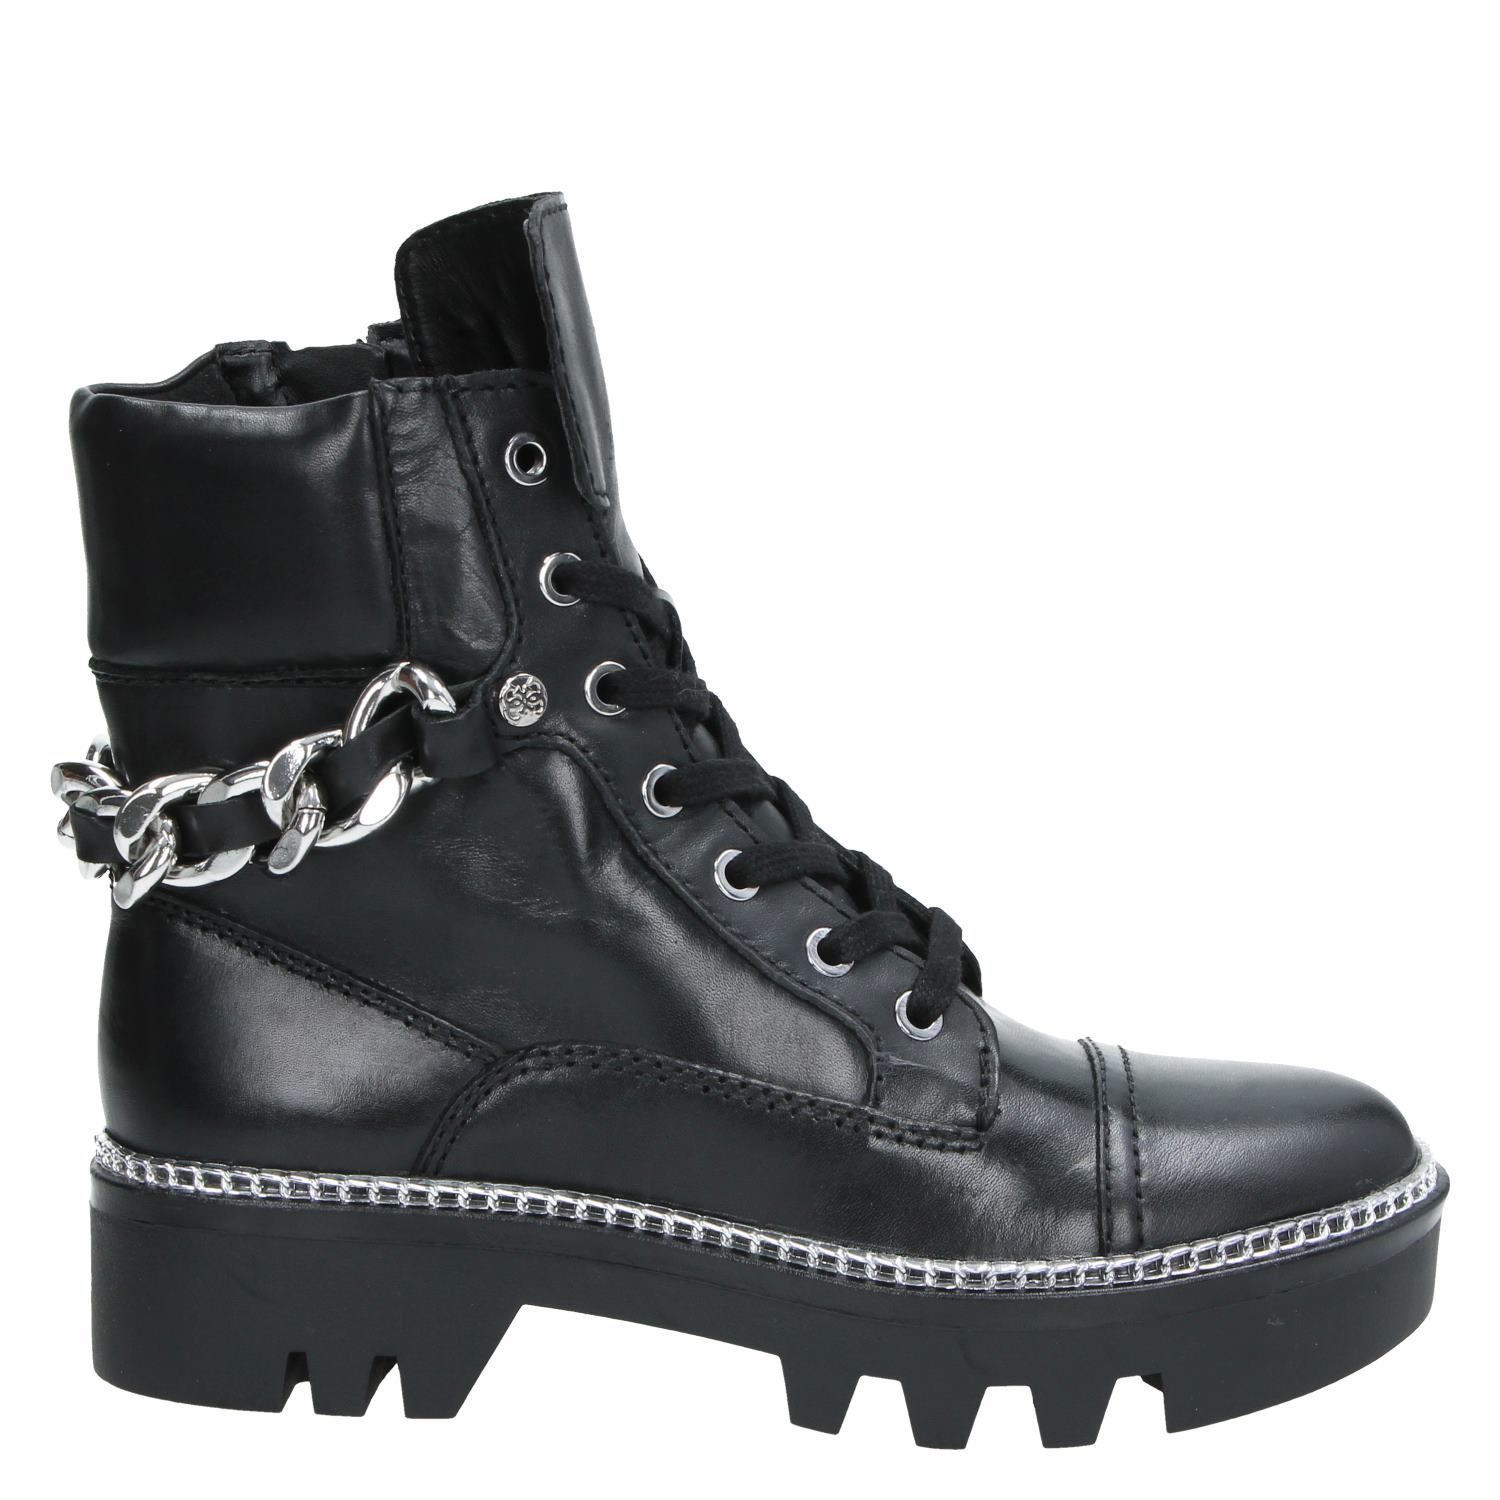 newest 8c02a e24df Guess Domain stivaleTTO dames veterboots zwart